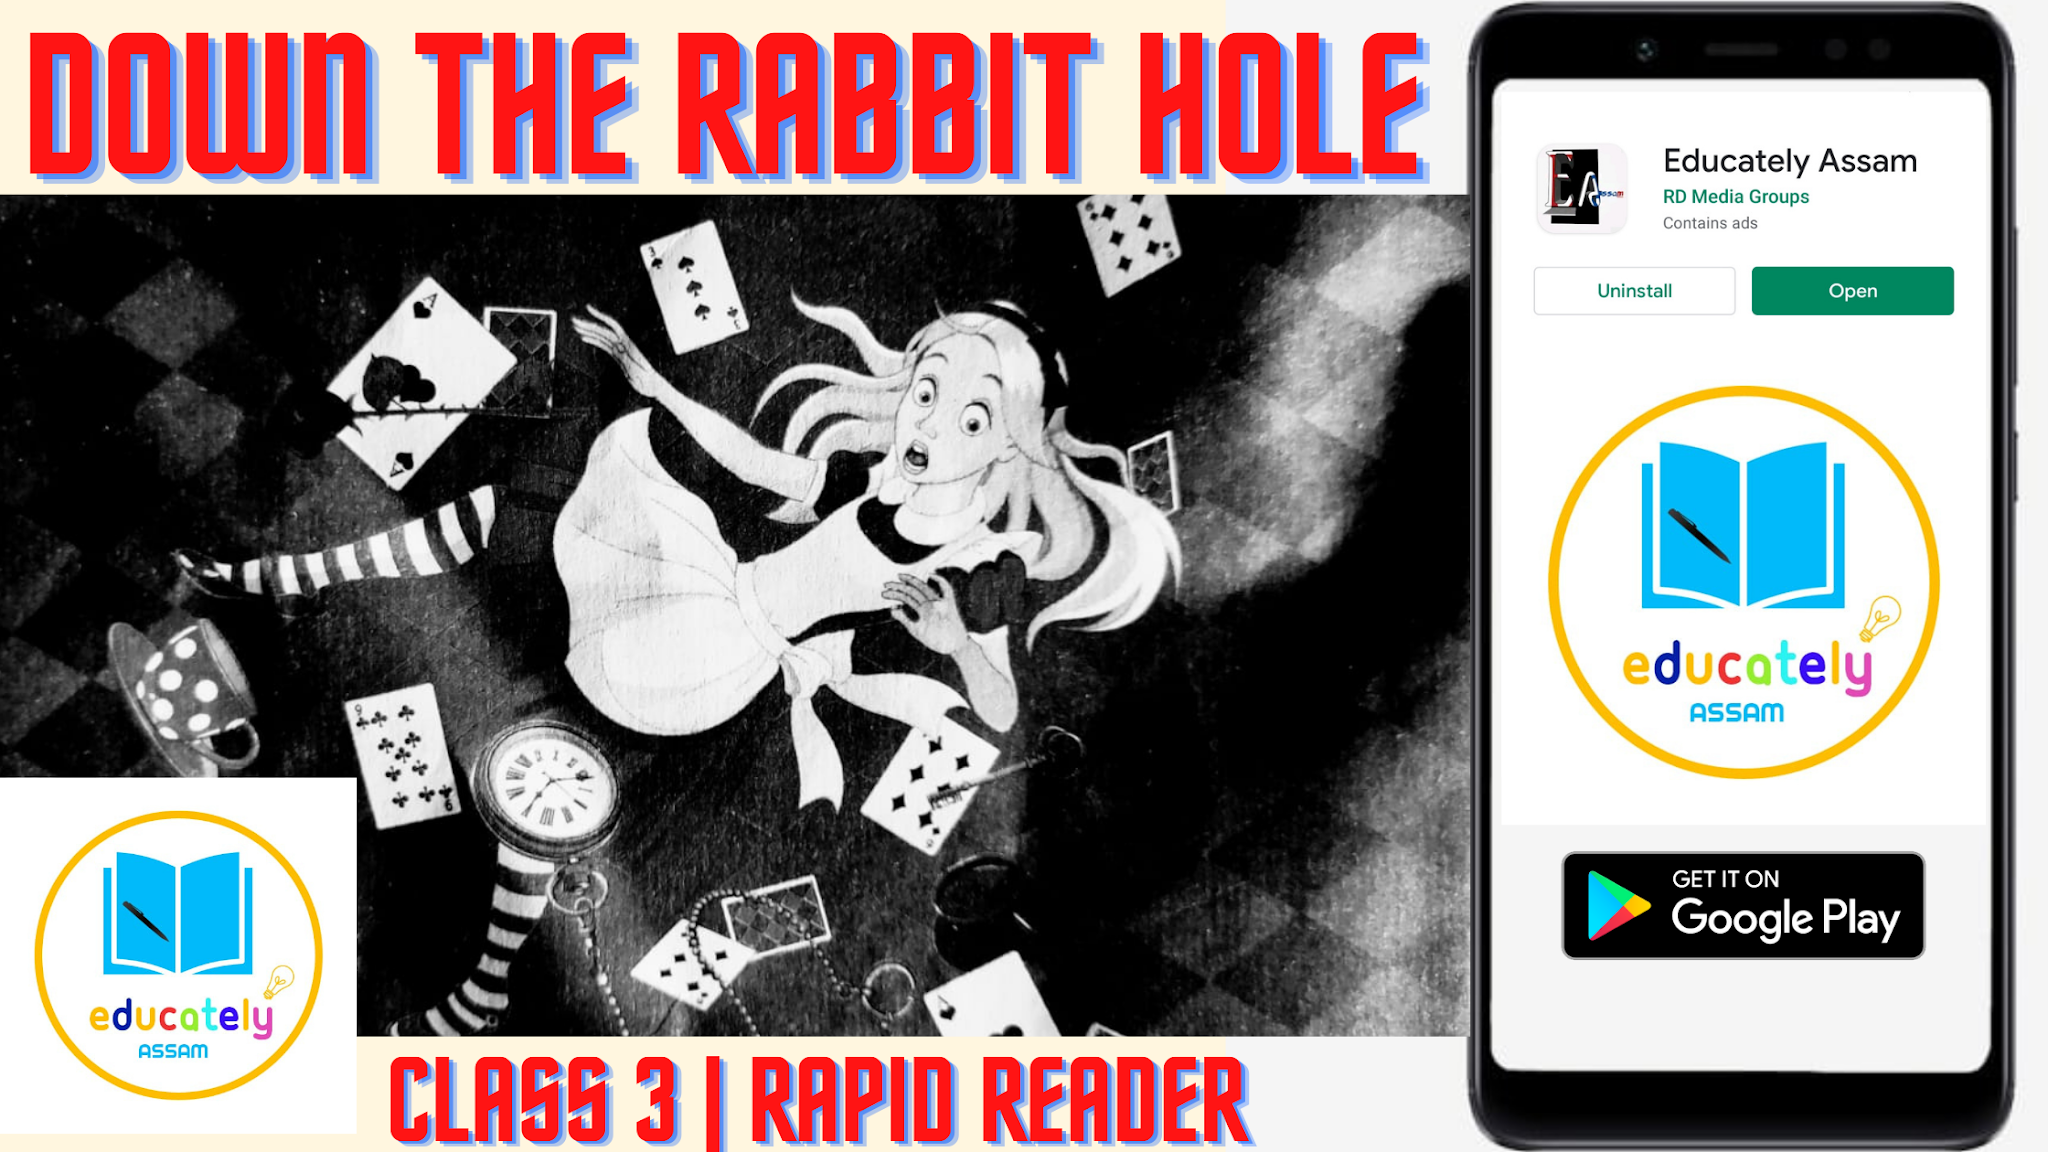 Lesson 8 | Down the rabbit hole all questions answers | Reader 3